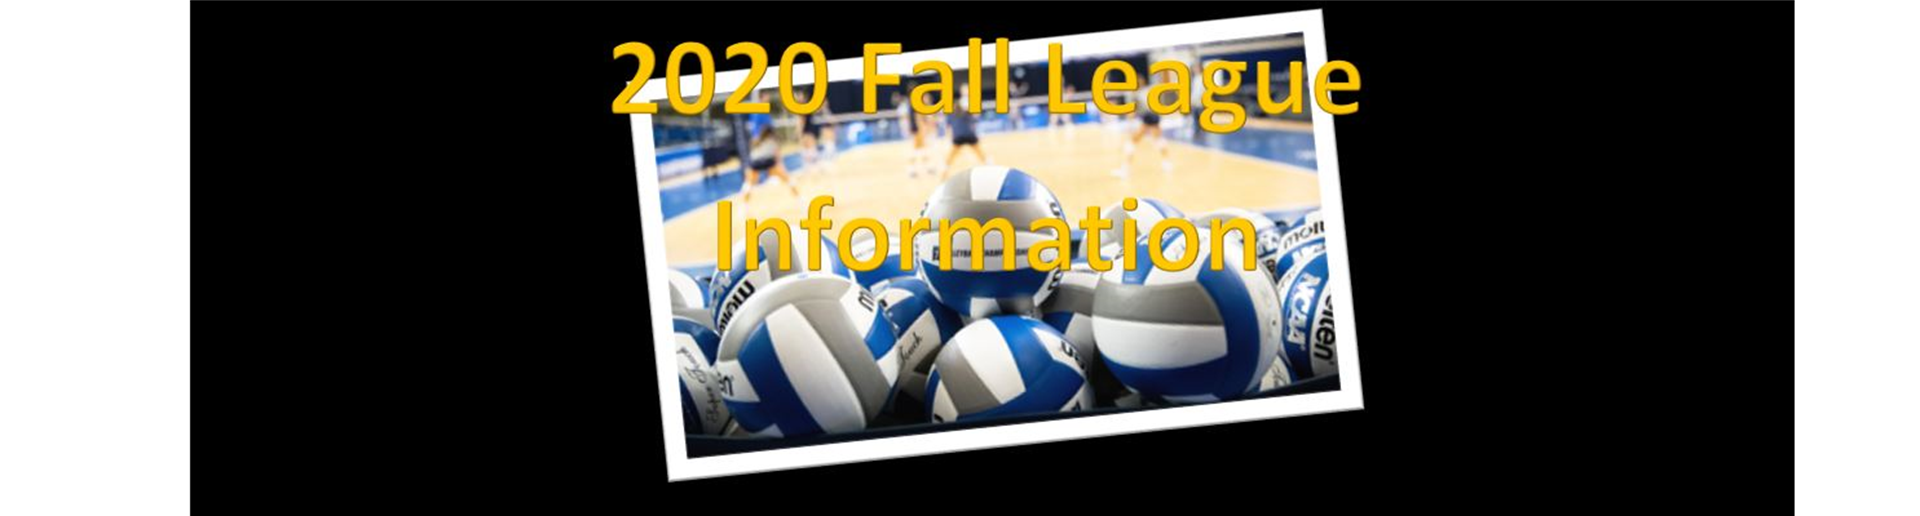 Fall School League Information